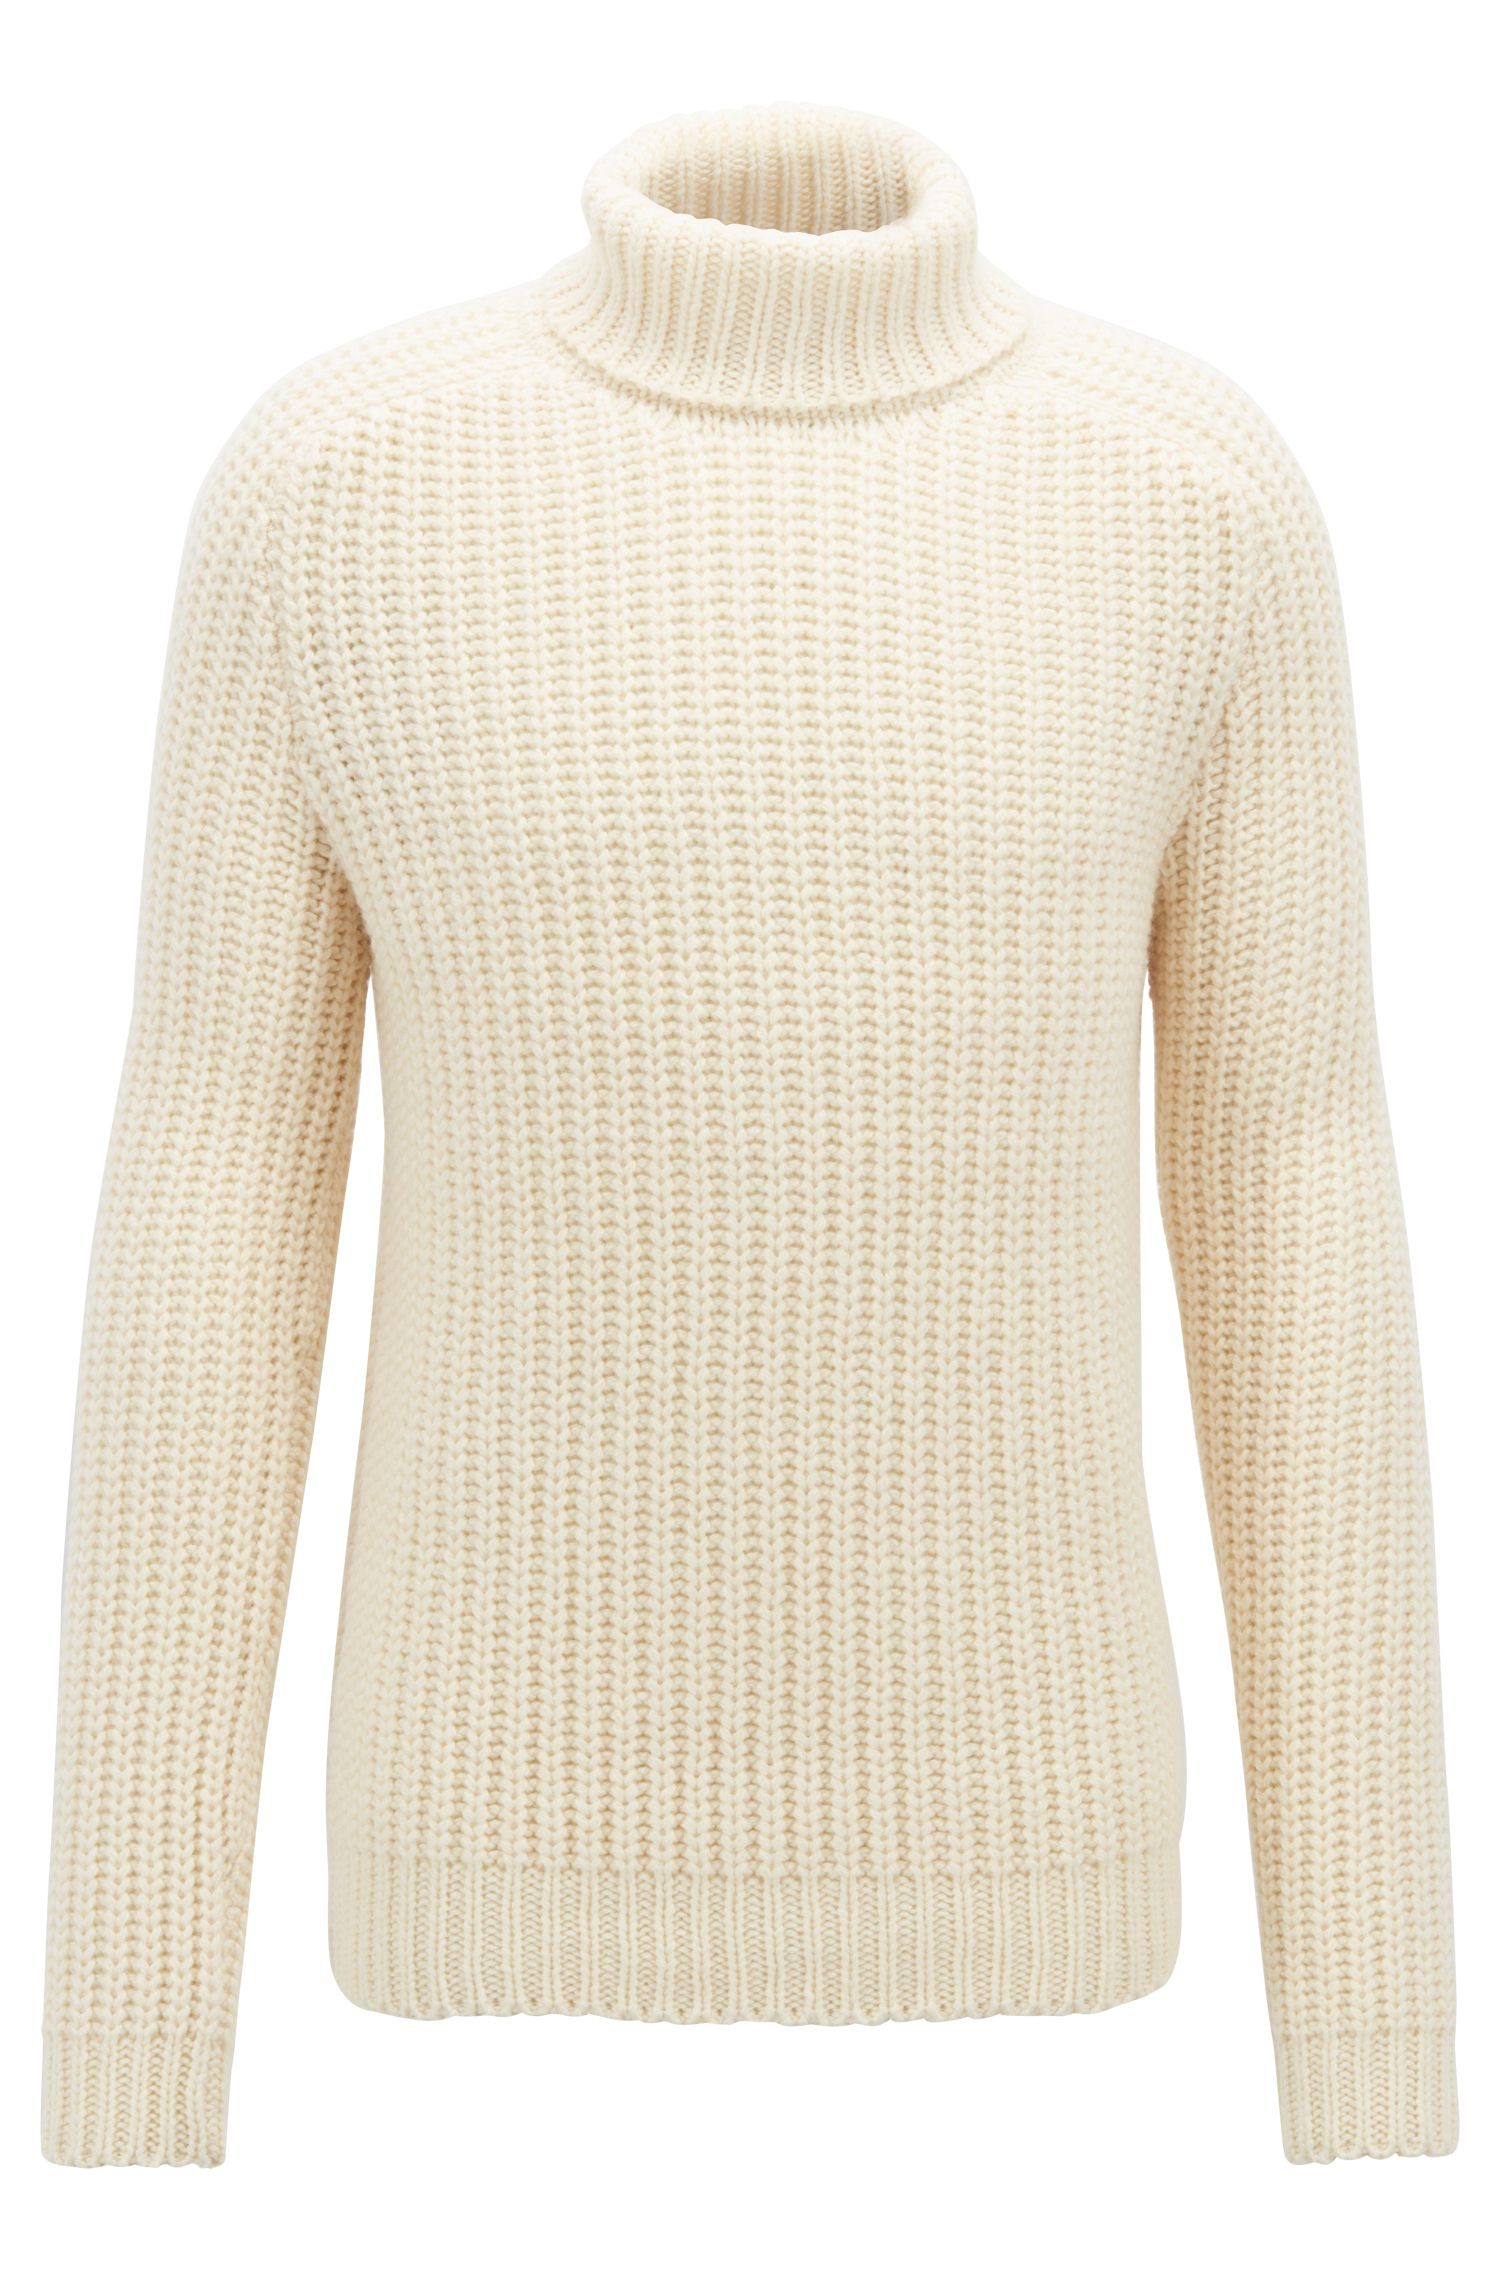 Fashion Show Capsule turtleneck sweater in cashmere, Natural